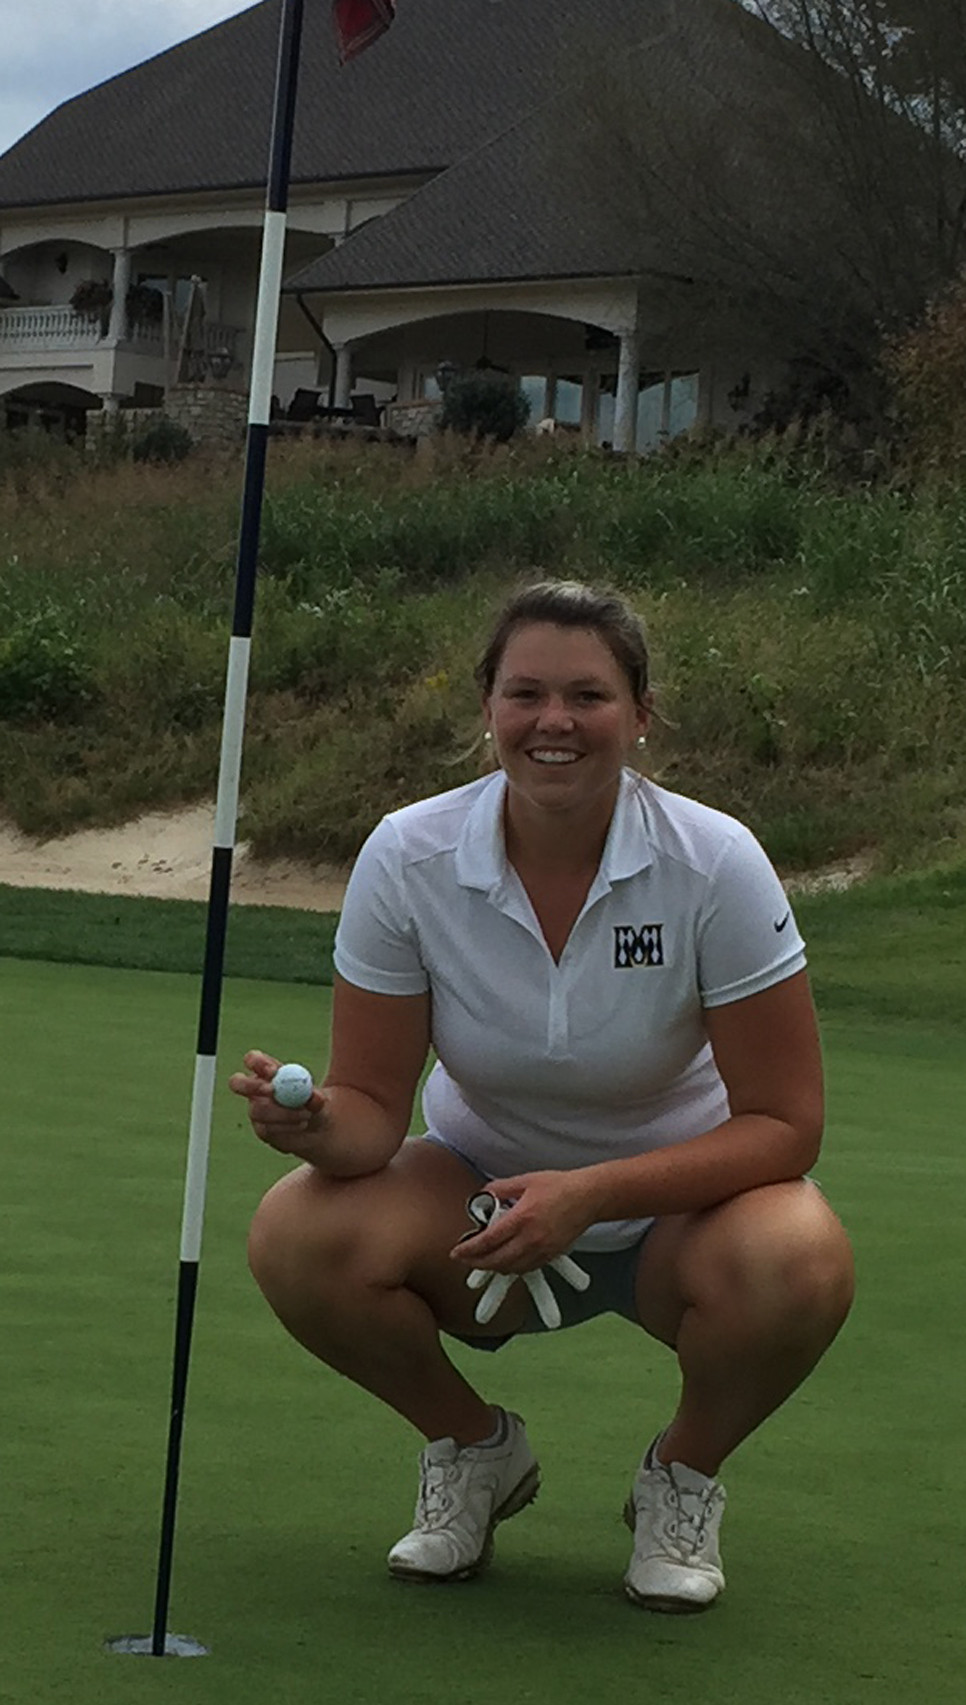 JANE WATTS poses with her ball after making a hole-in-one. (Photo submitted)